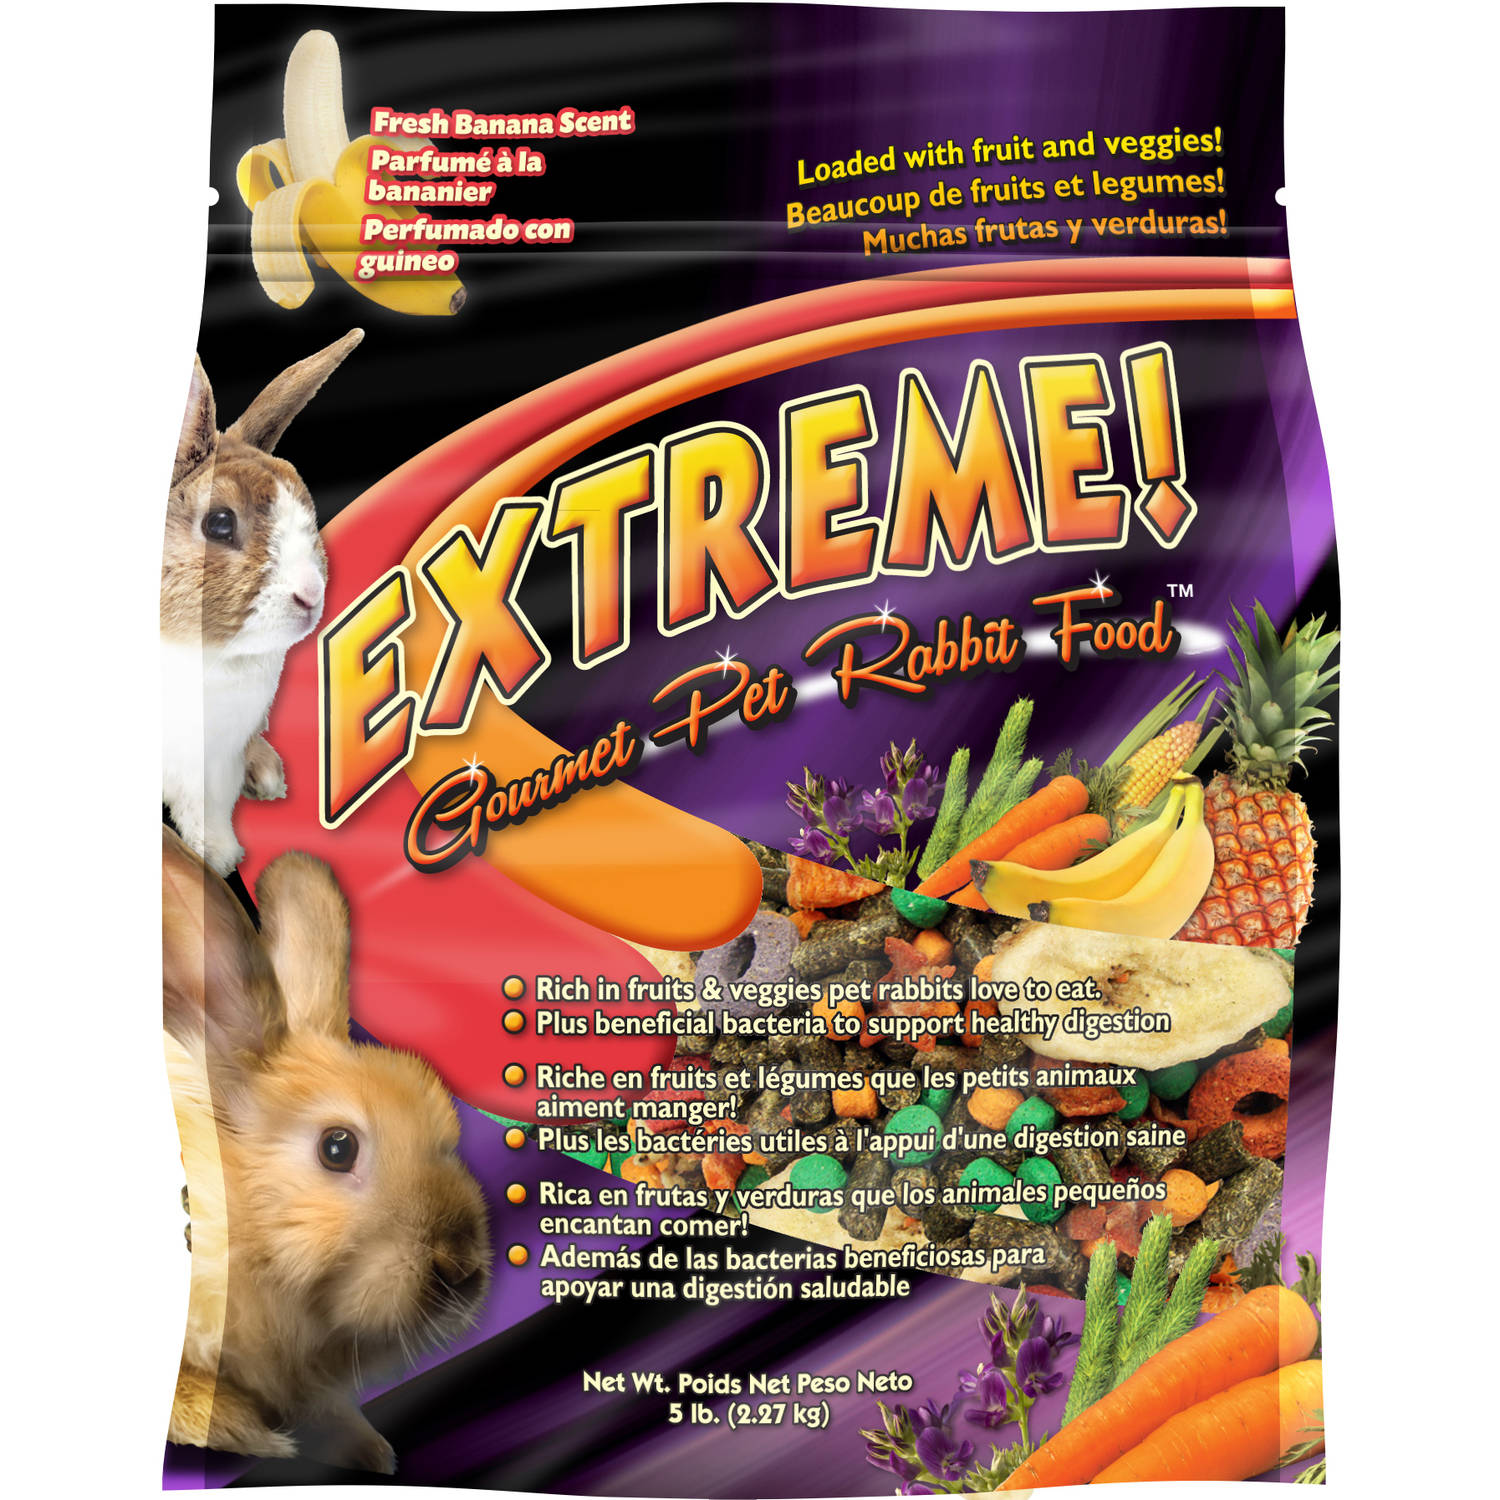 Brown's Extreme! Gourmet Rabbit Food by F.M. BROWN'S SONS, INC.